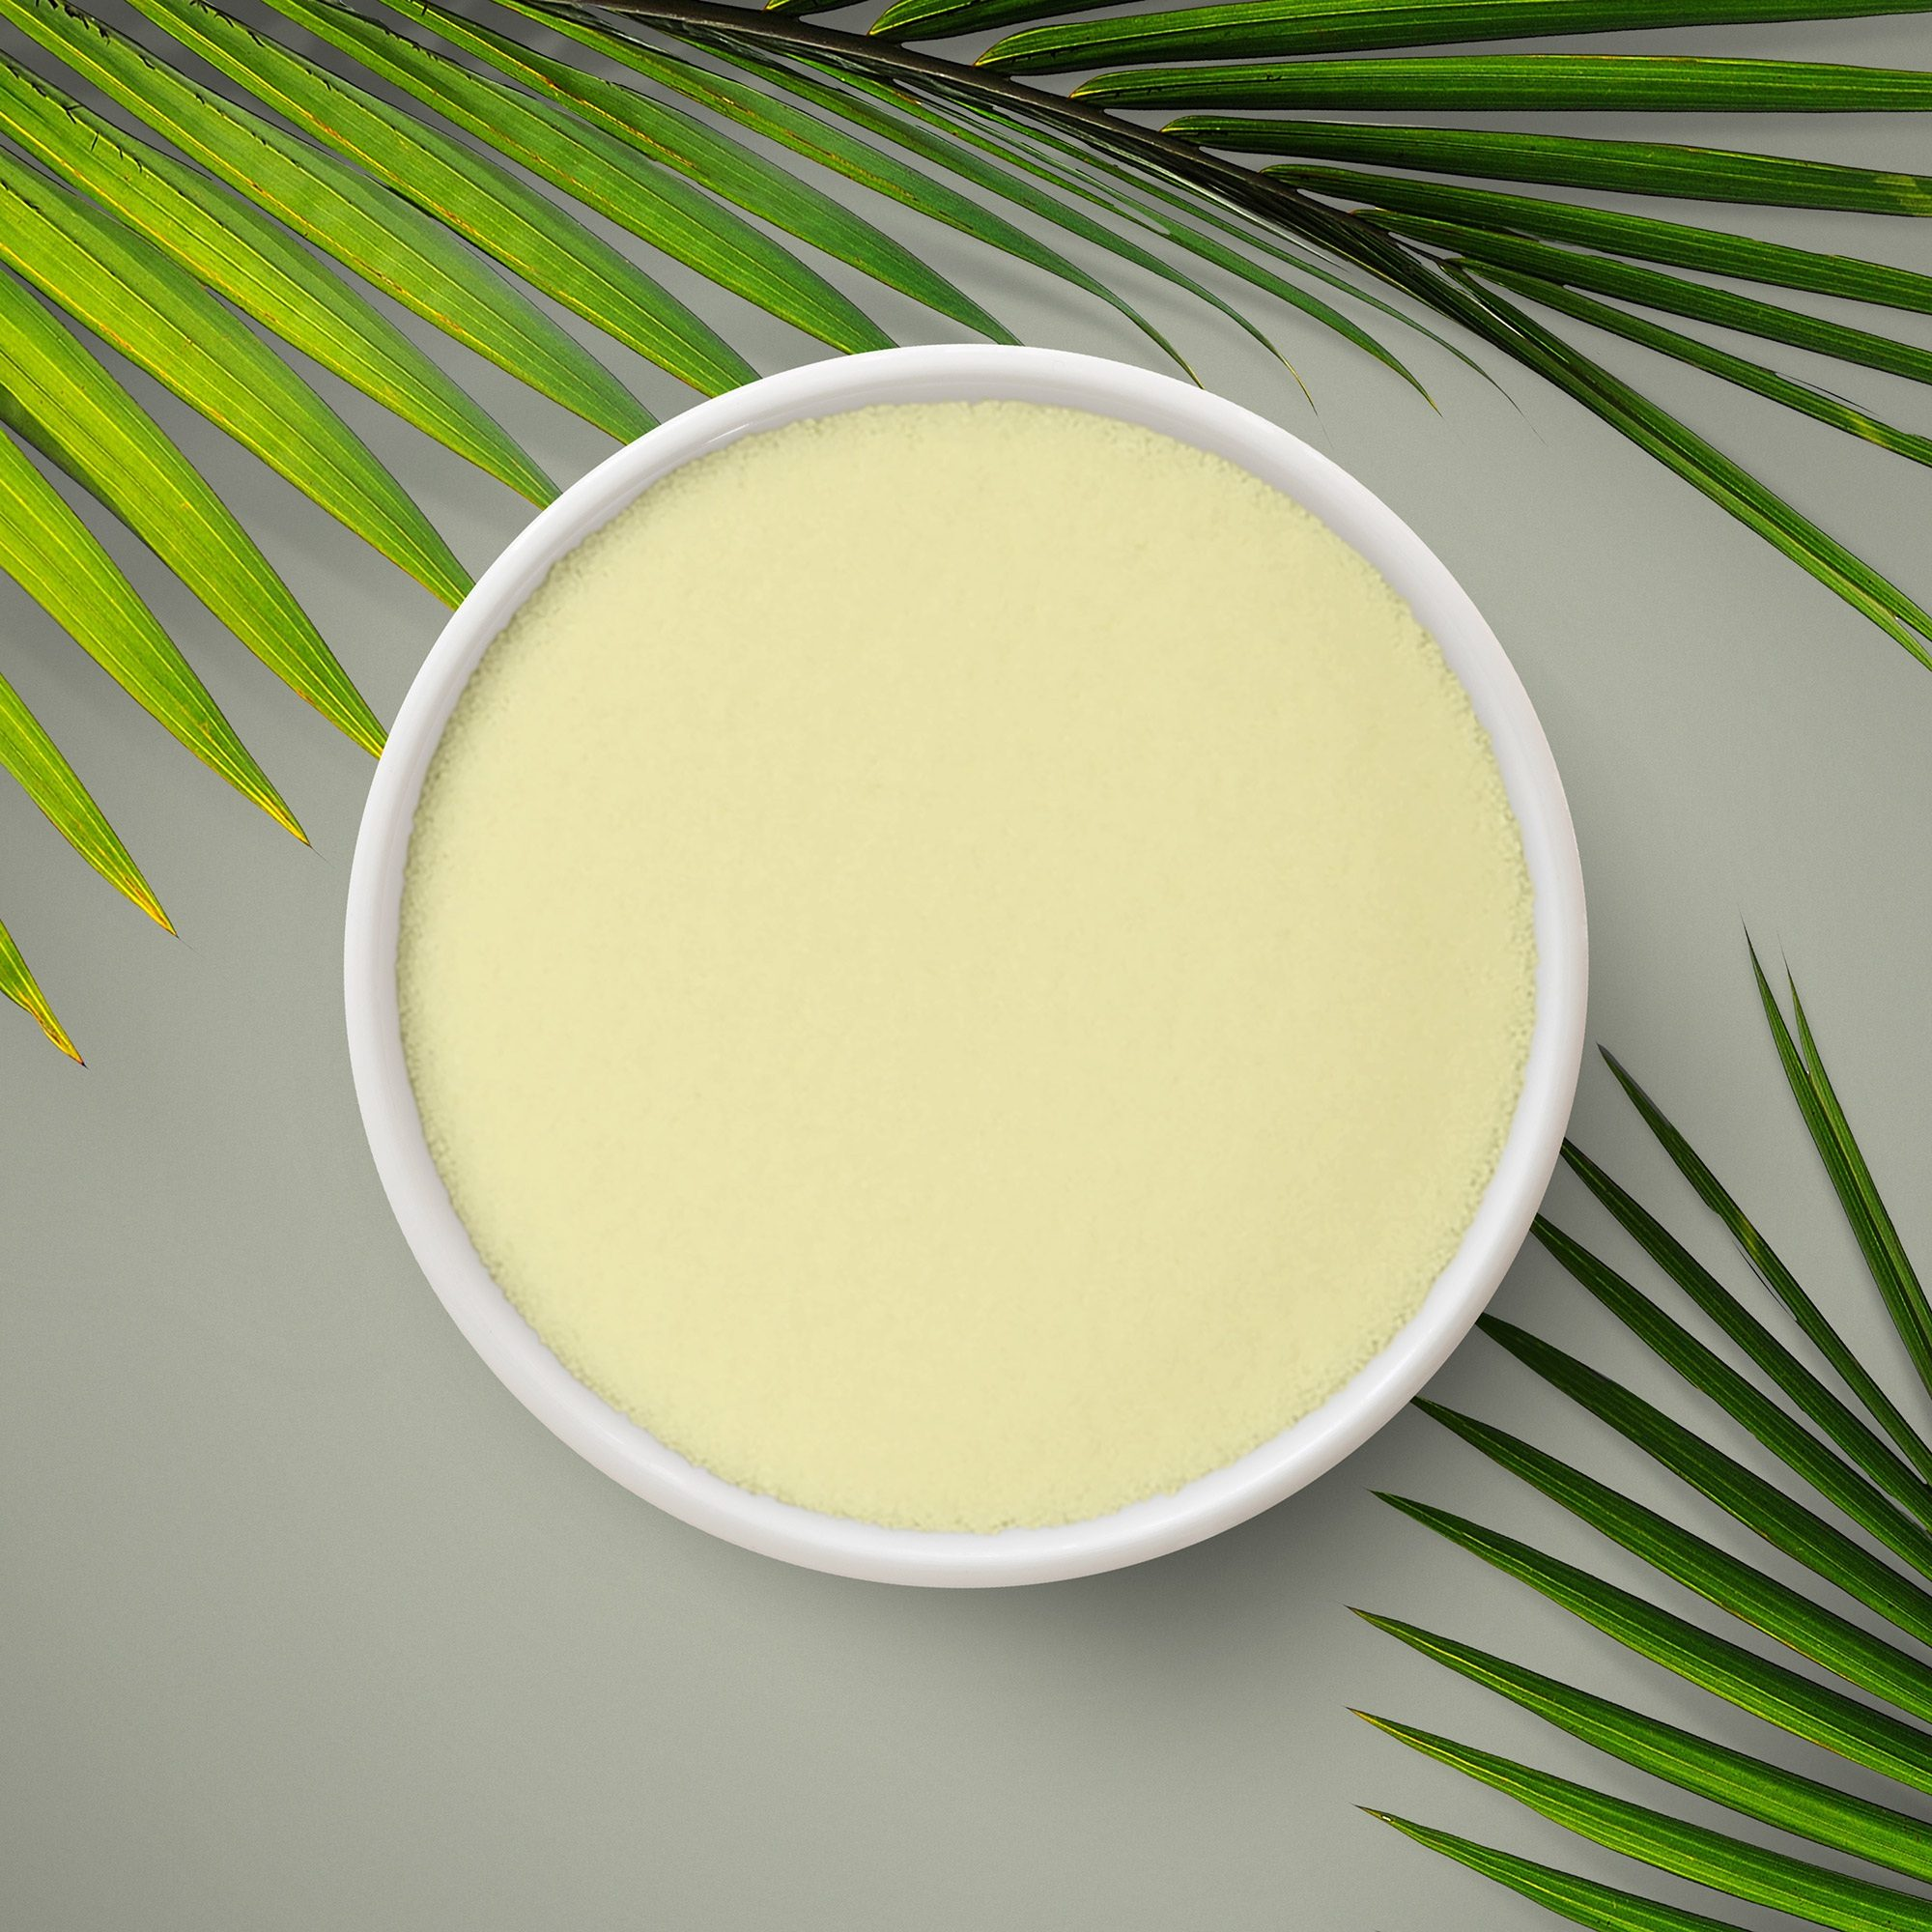 Fine, yellow, natural wax powder, which can be used as an ingredient for food, pharmaceuticals or vegan beauty products.